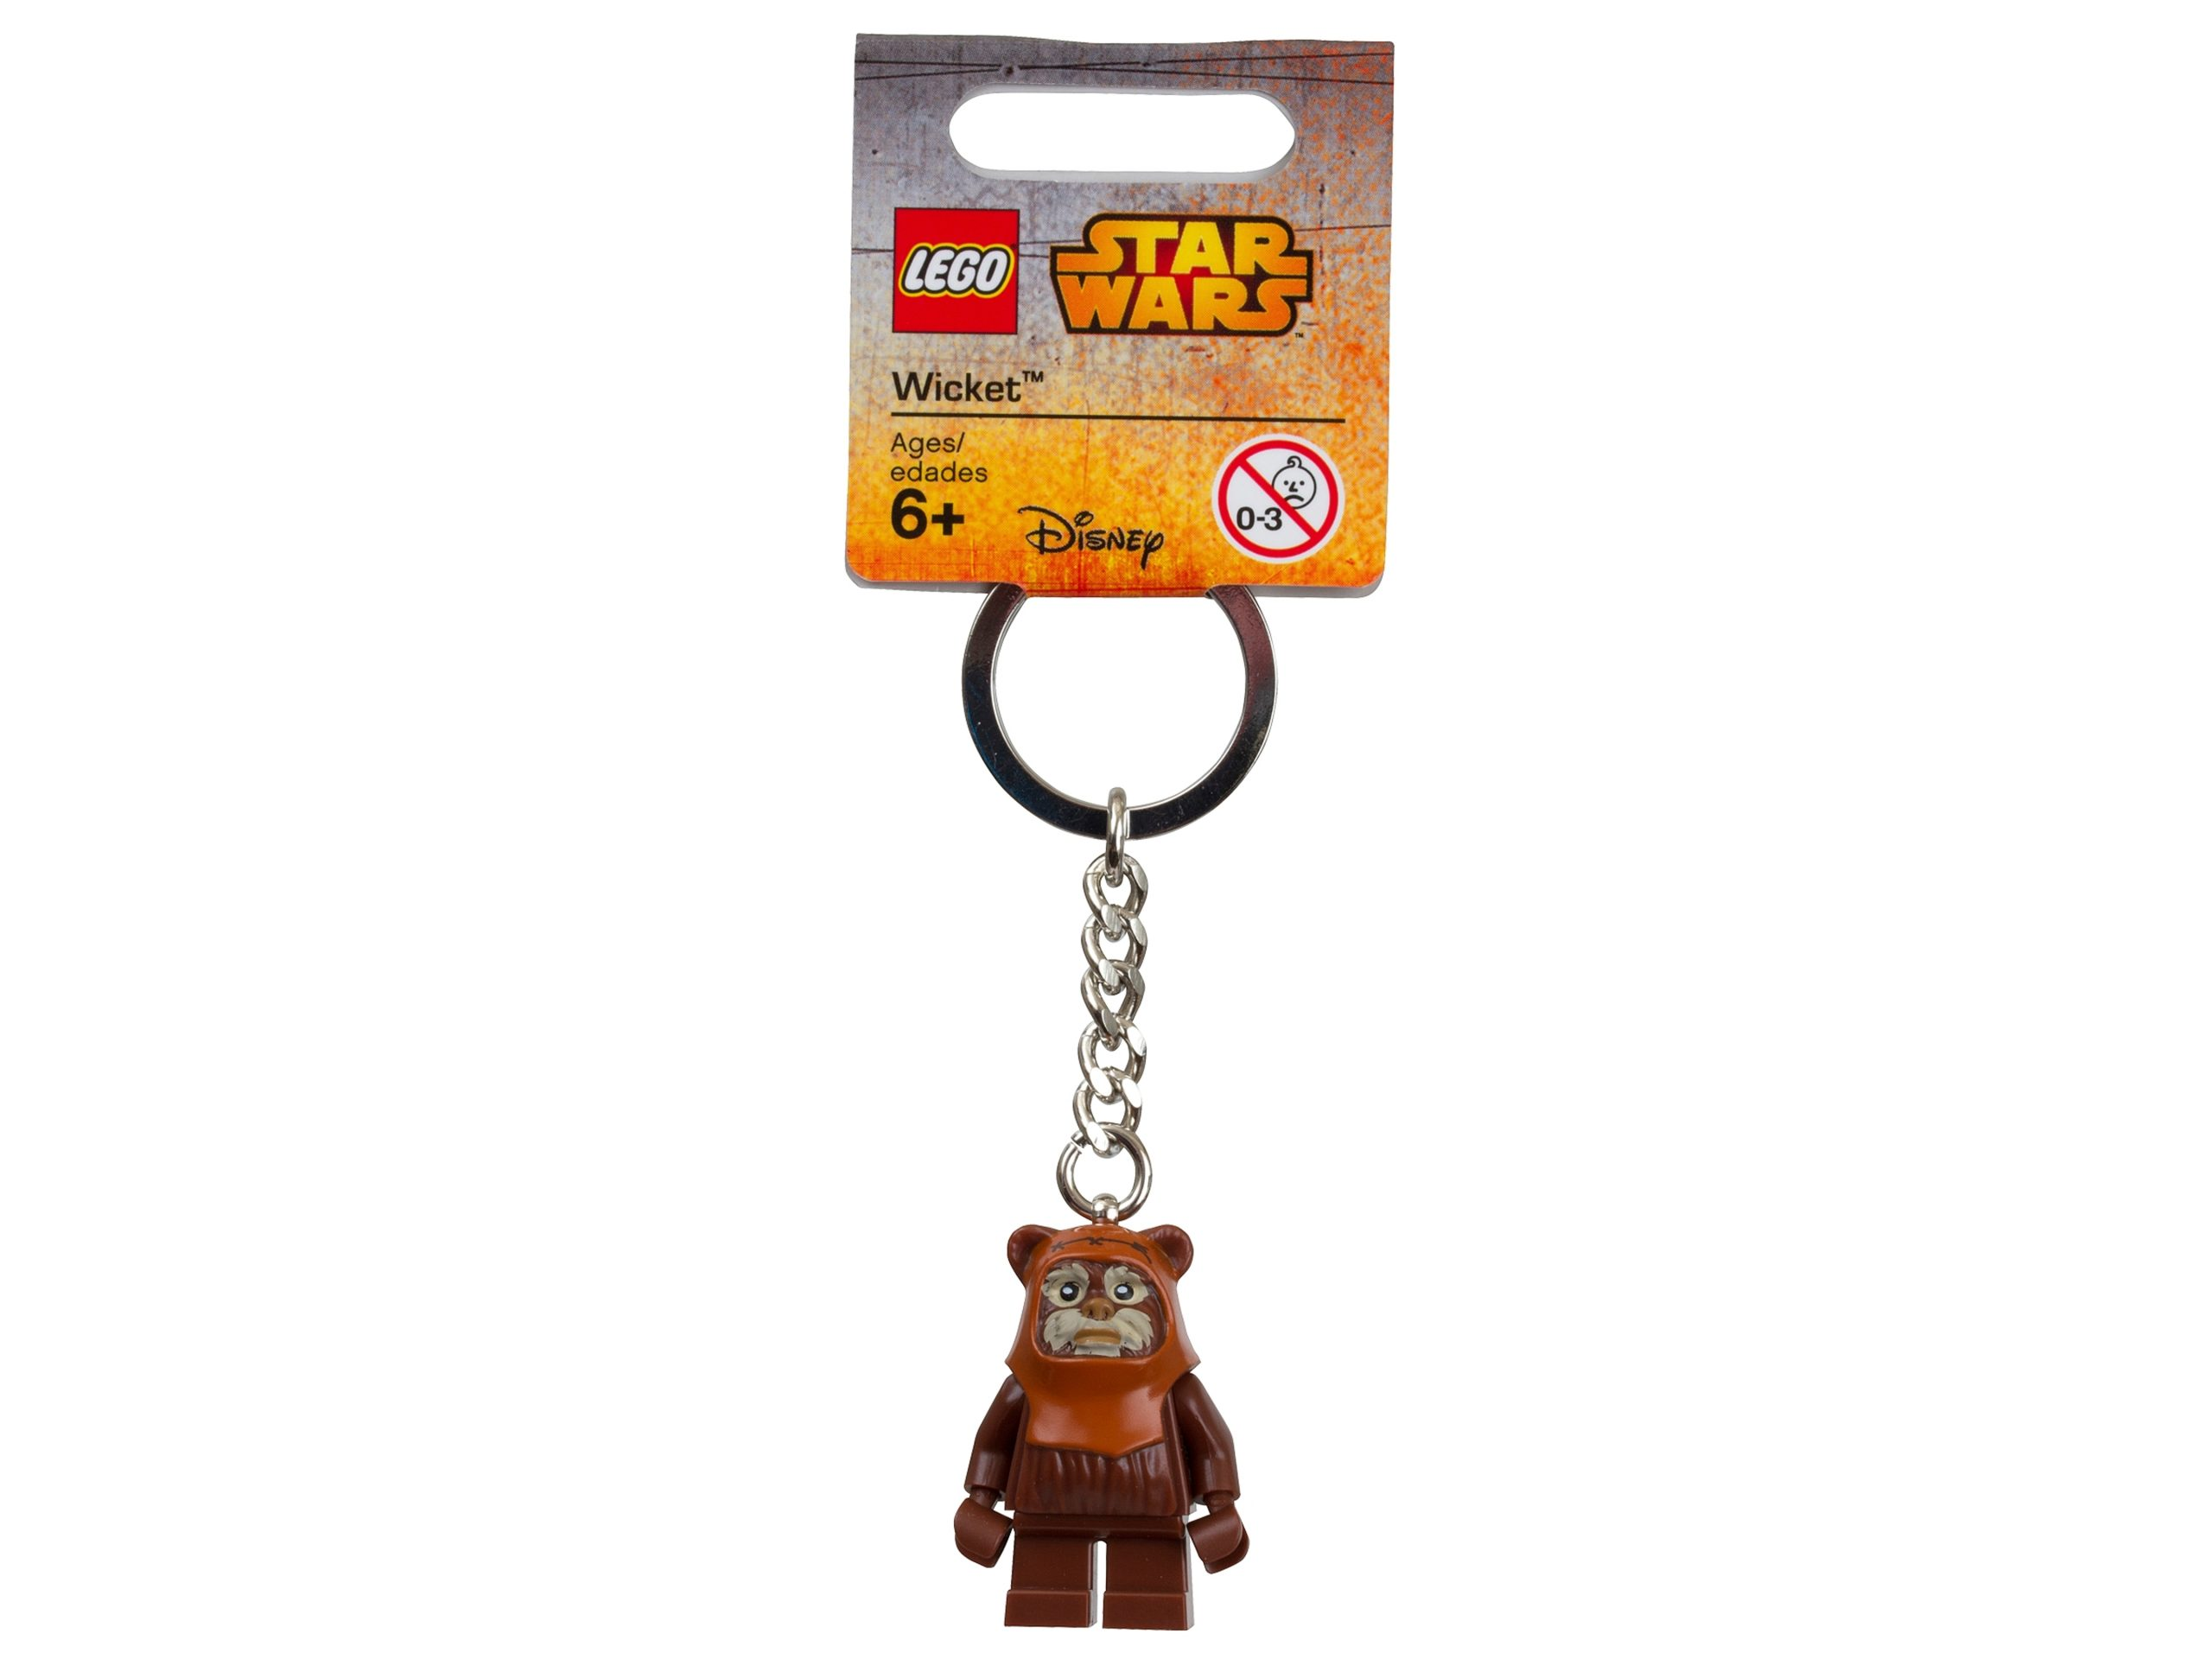 lego 853469 star wars wicket key chain scaled